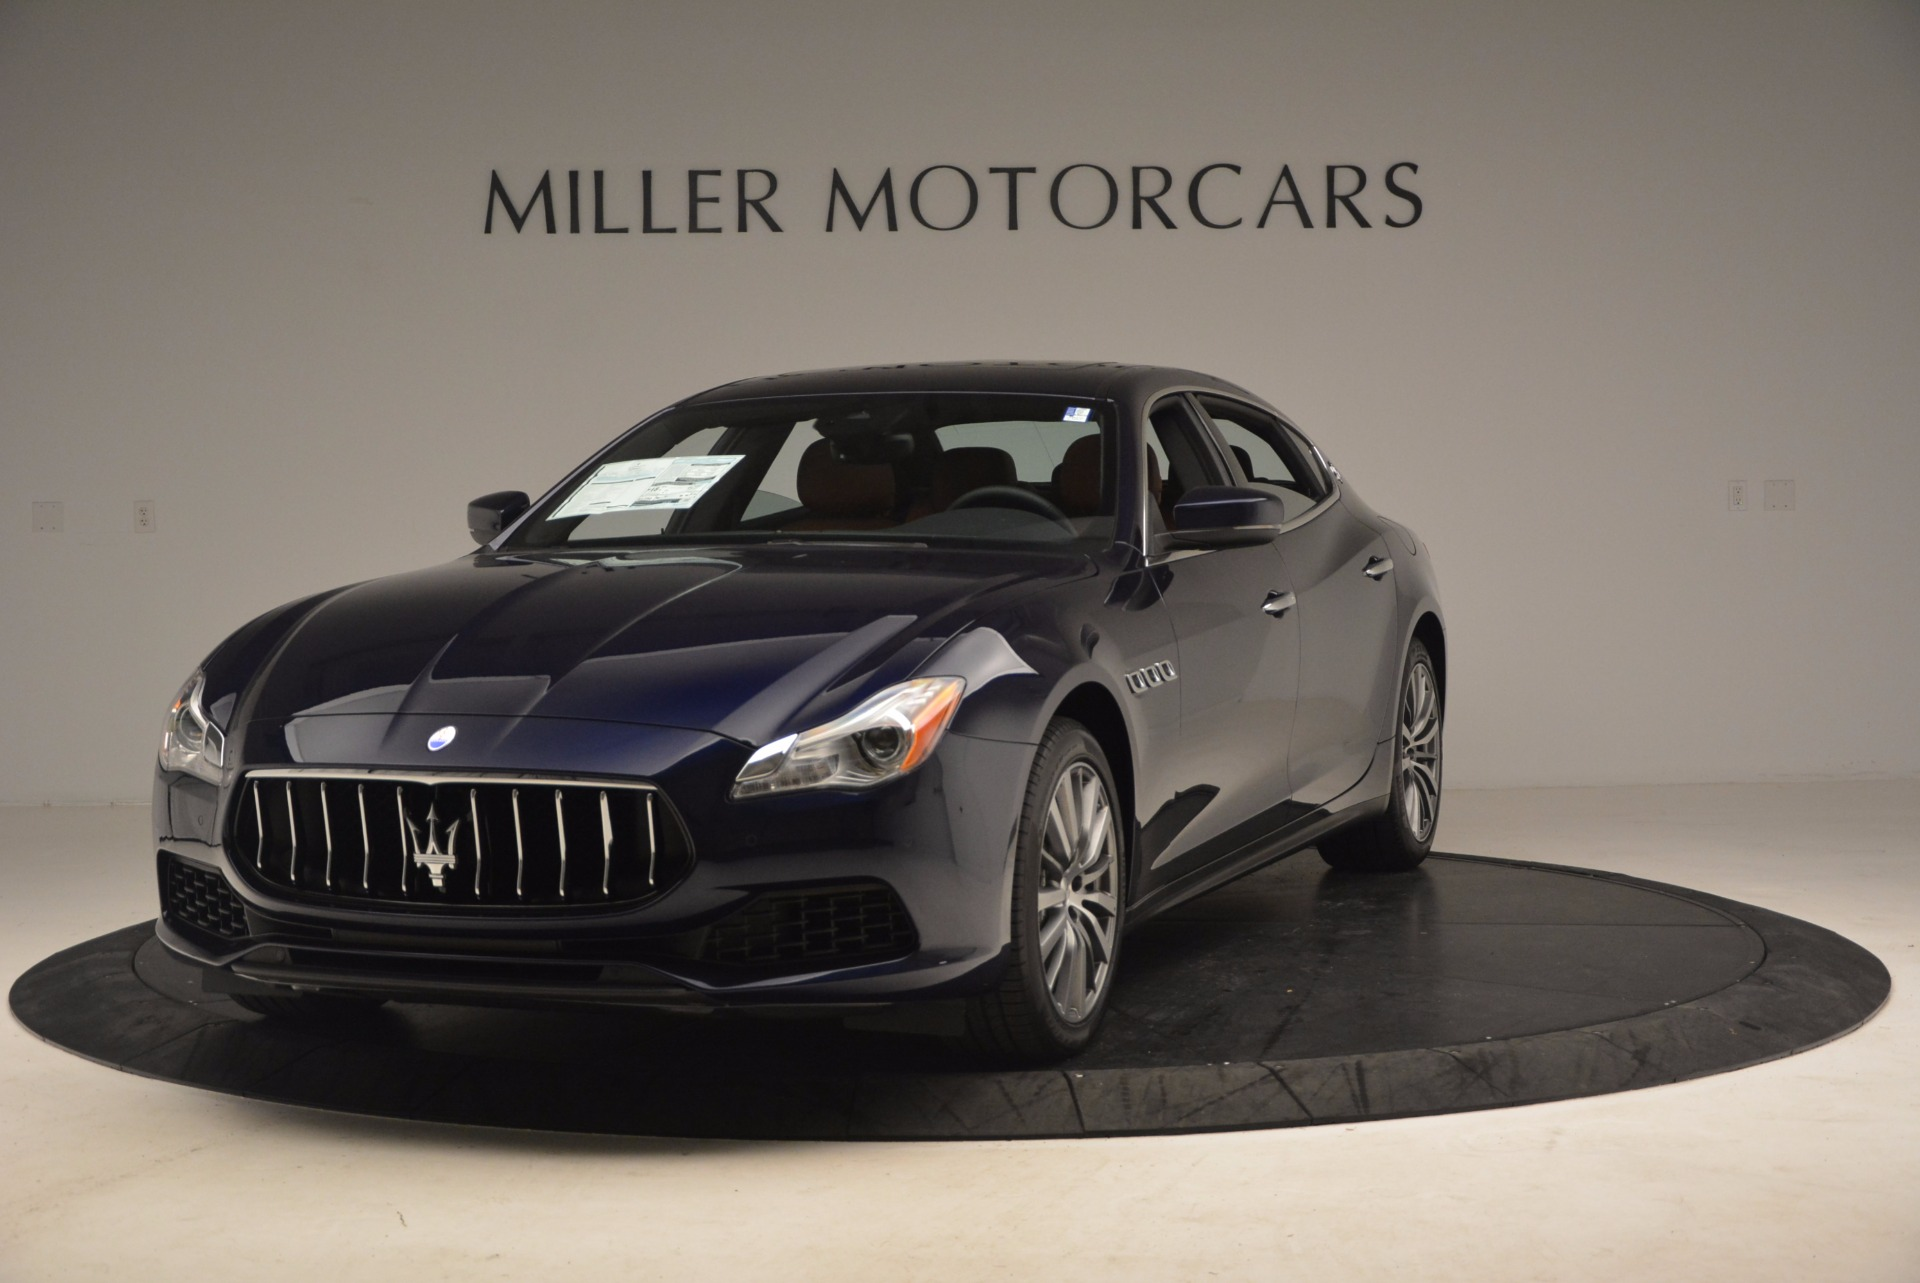 New 2017 Maserati Quattroporte S Q4 for sale Sold at Maserati of Greenwich in Greenwich CT 06830 1